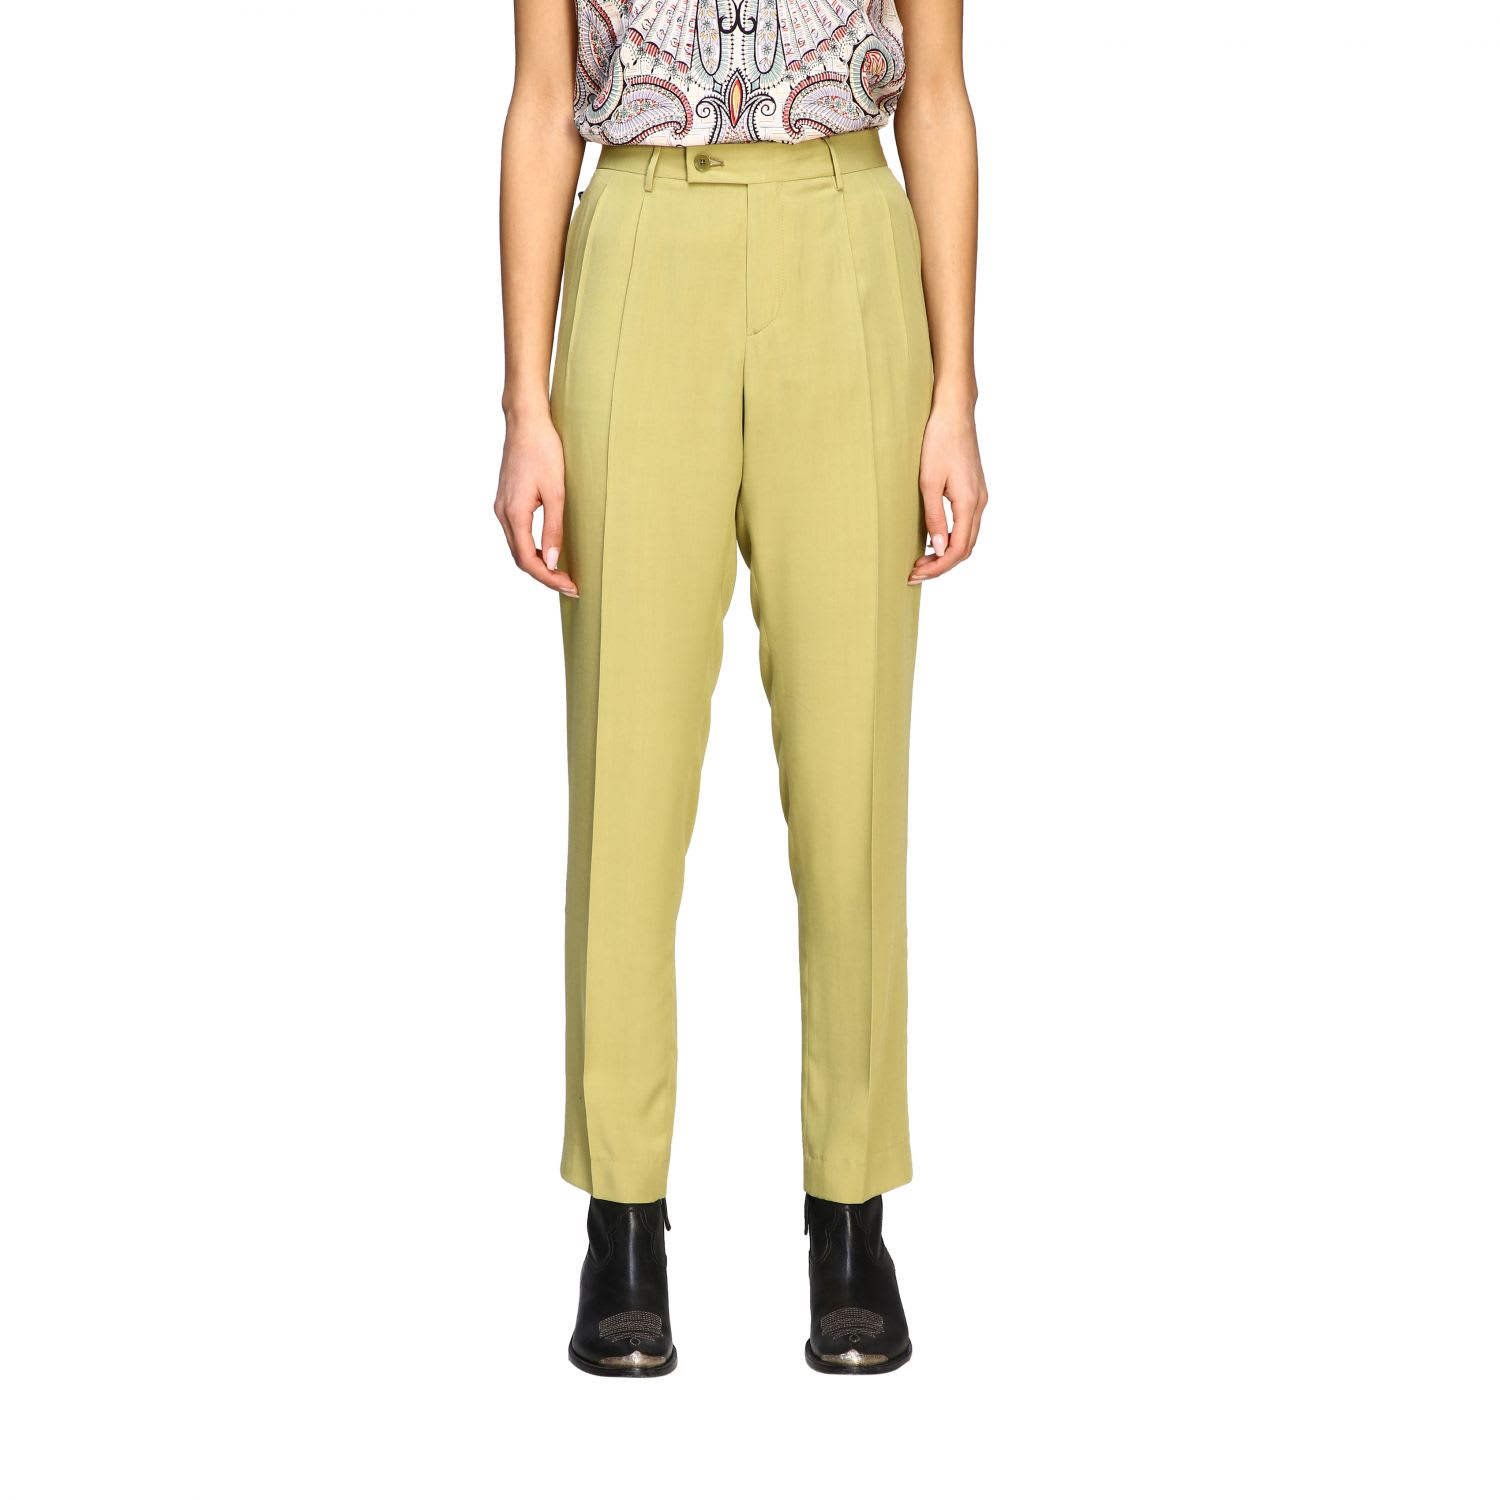 Etro Pants Classic Etro Trousers With America Pockets